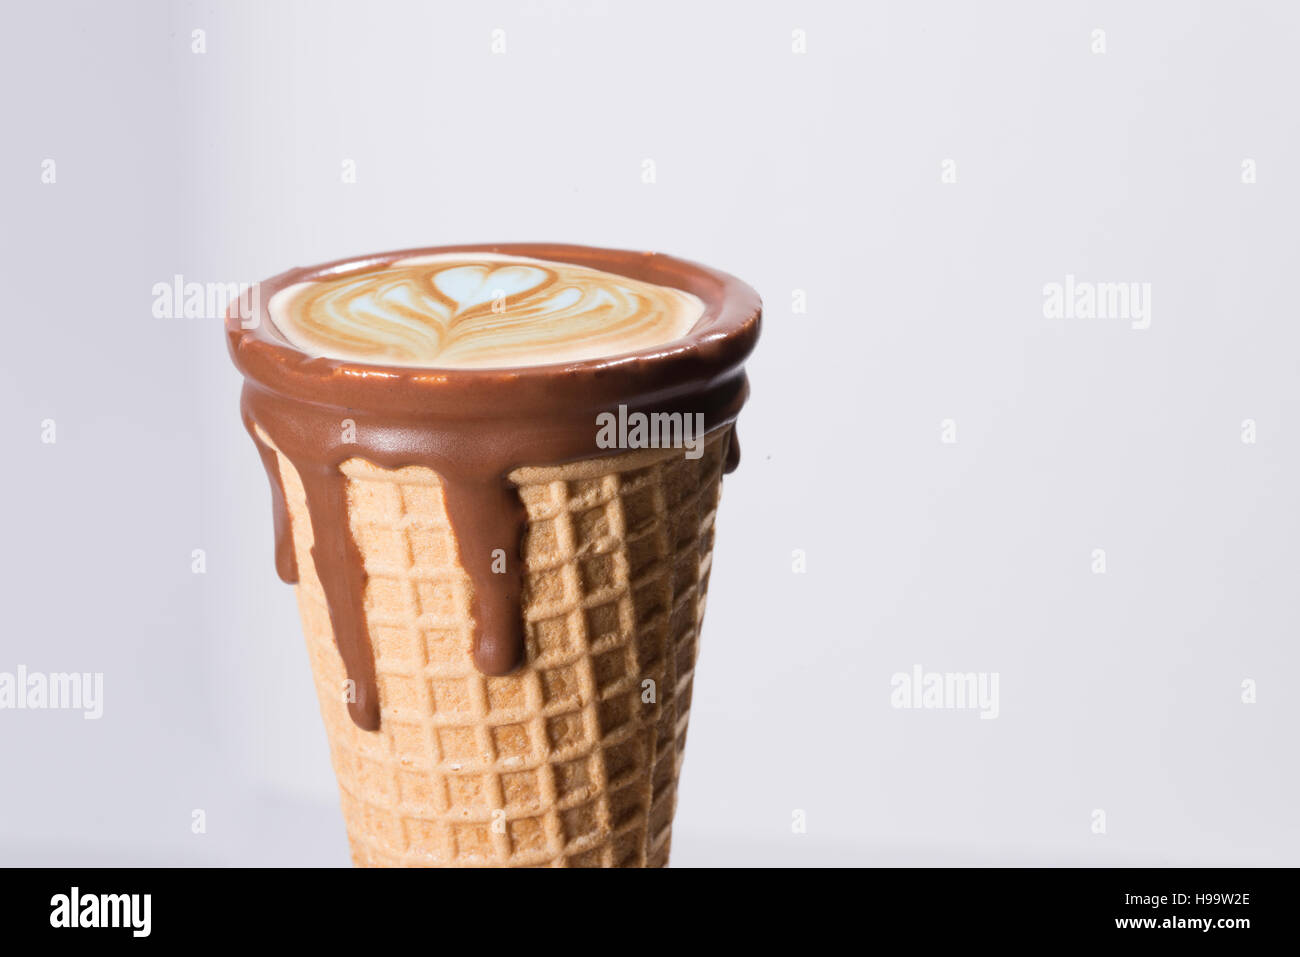 Coffee in waffle cone dipped in chocolate with drawings in cappuccino / latte milk foam, latte art, isolated Stock Photo